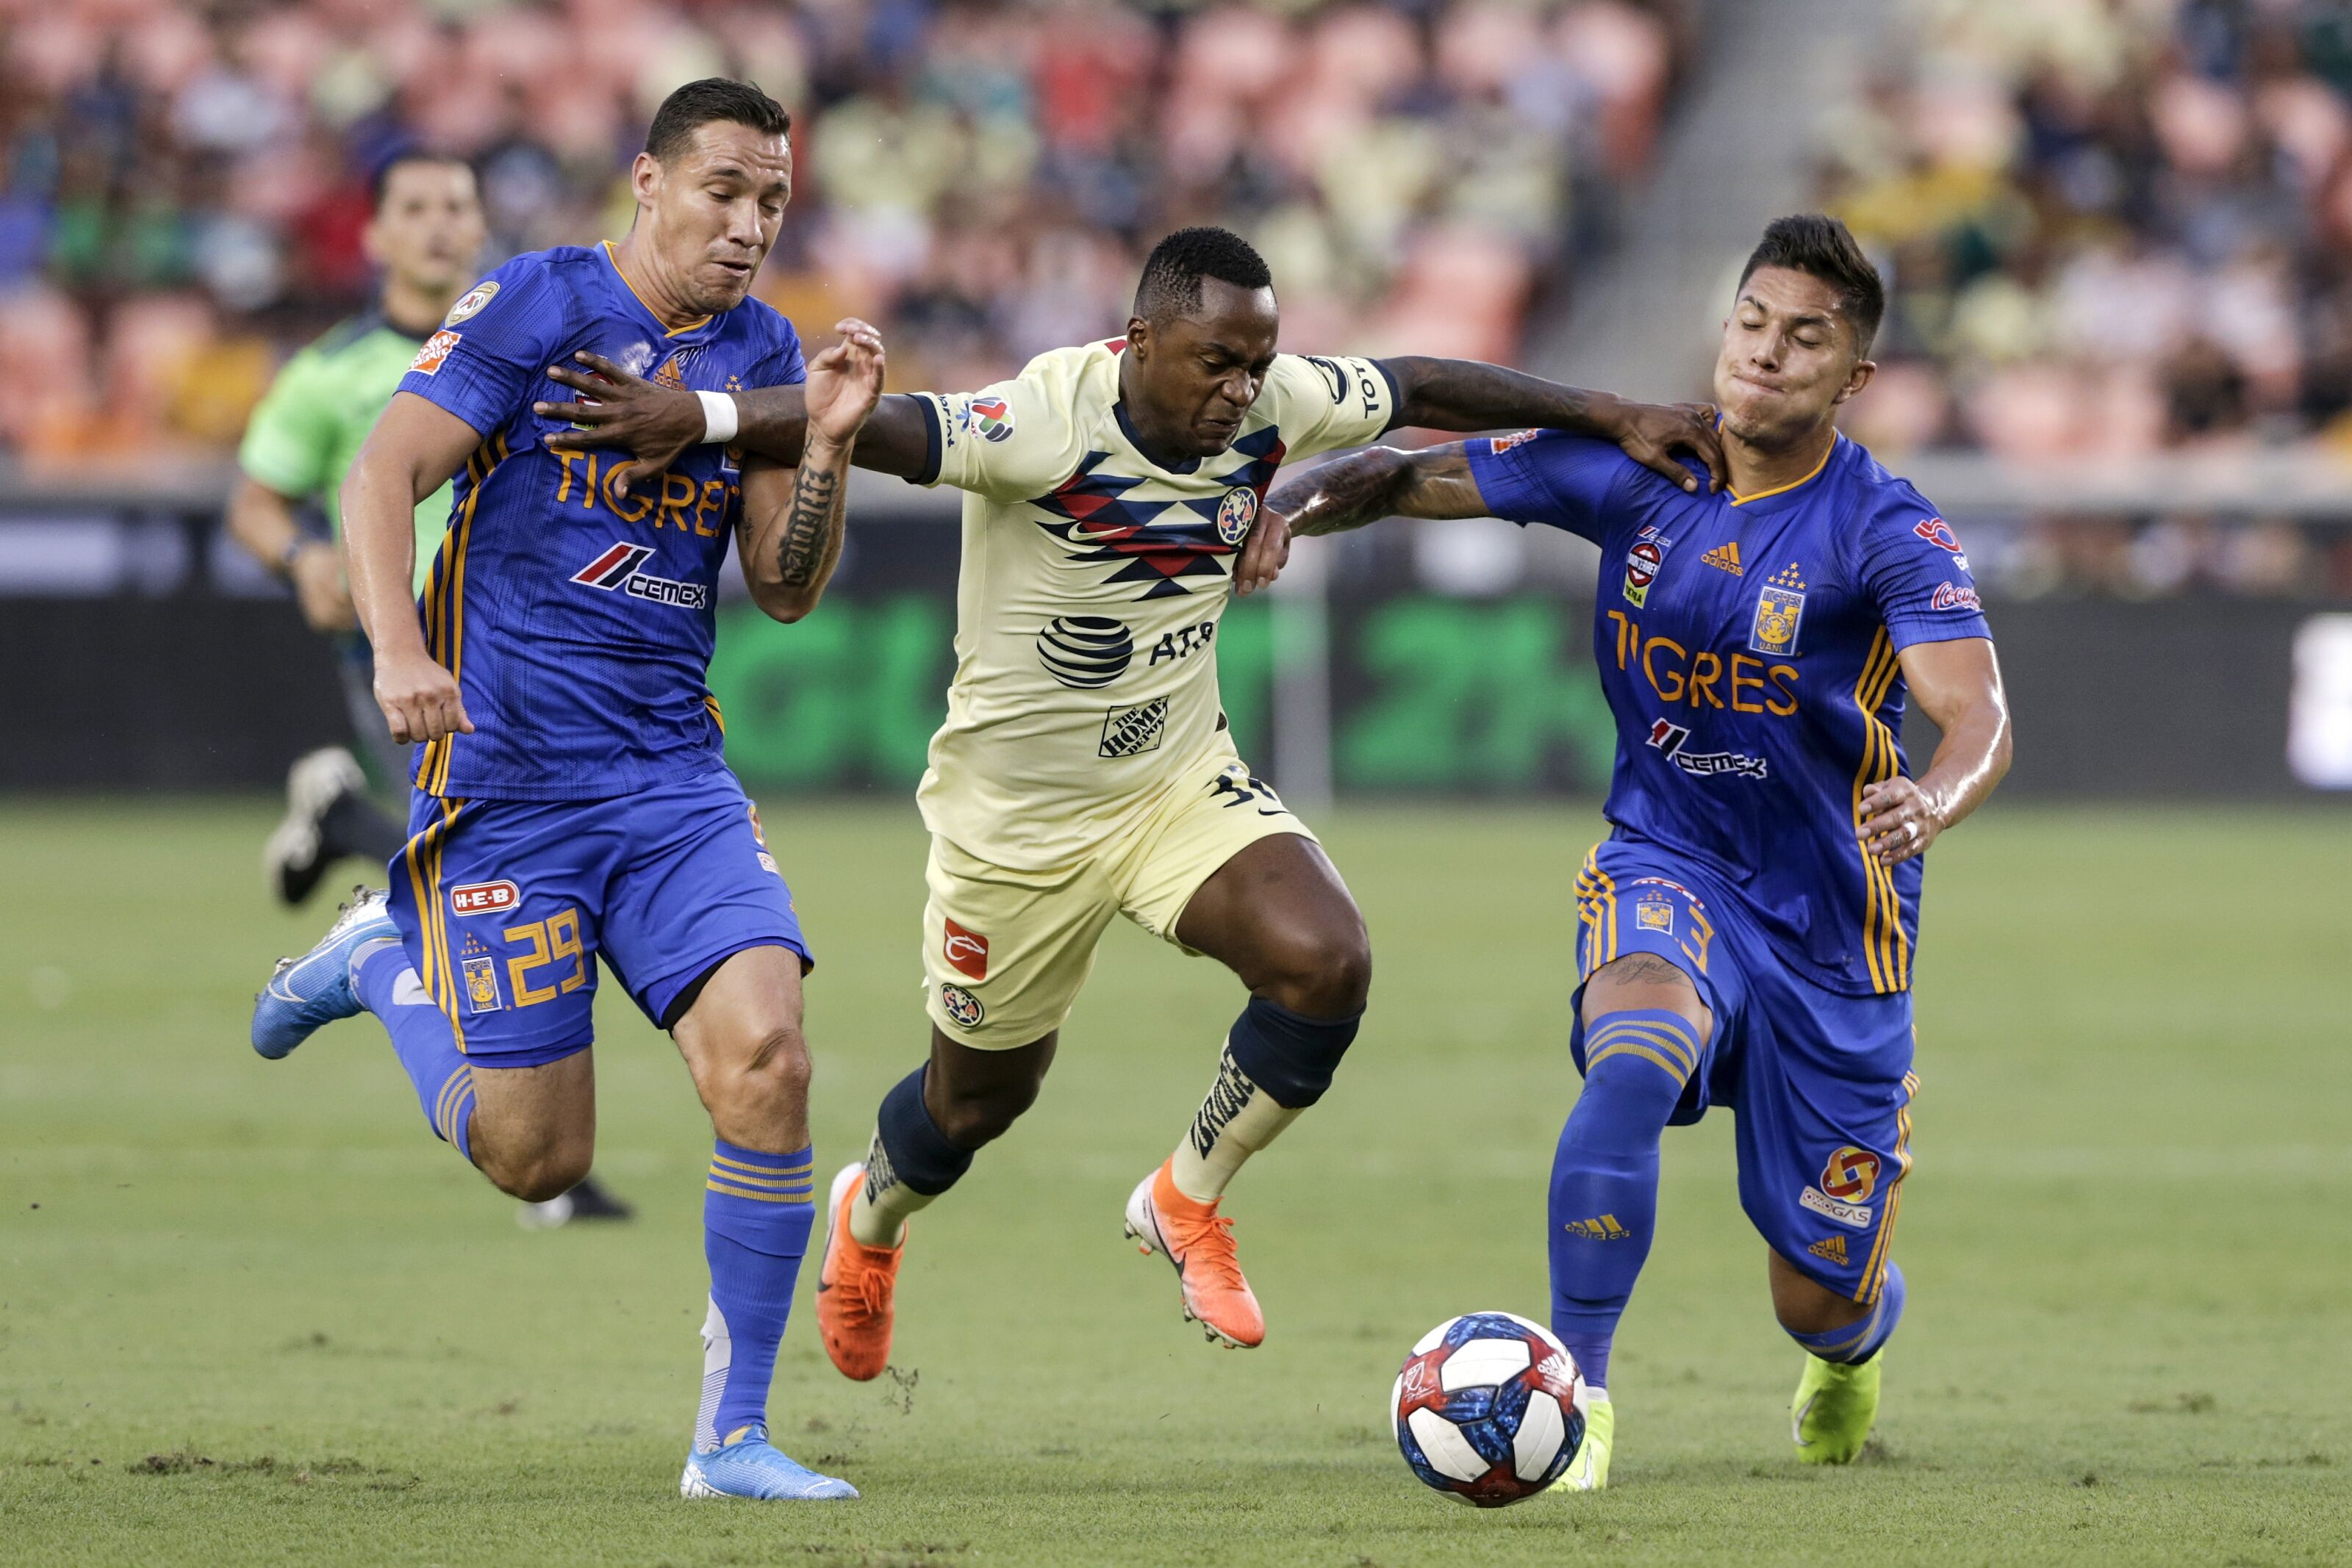 Matchday 6: Yawn … just another Tigres-América match to watch